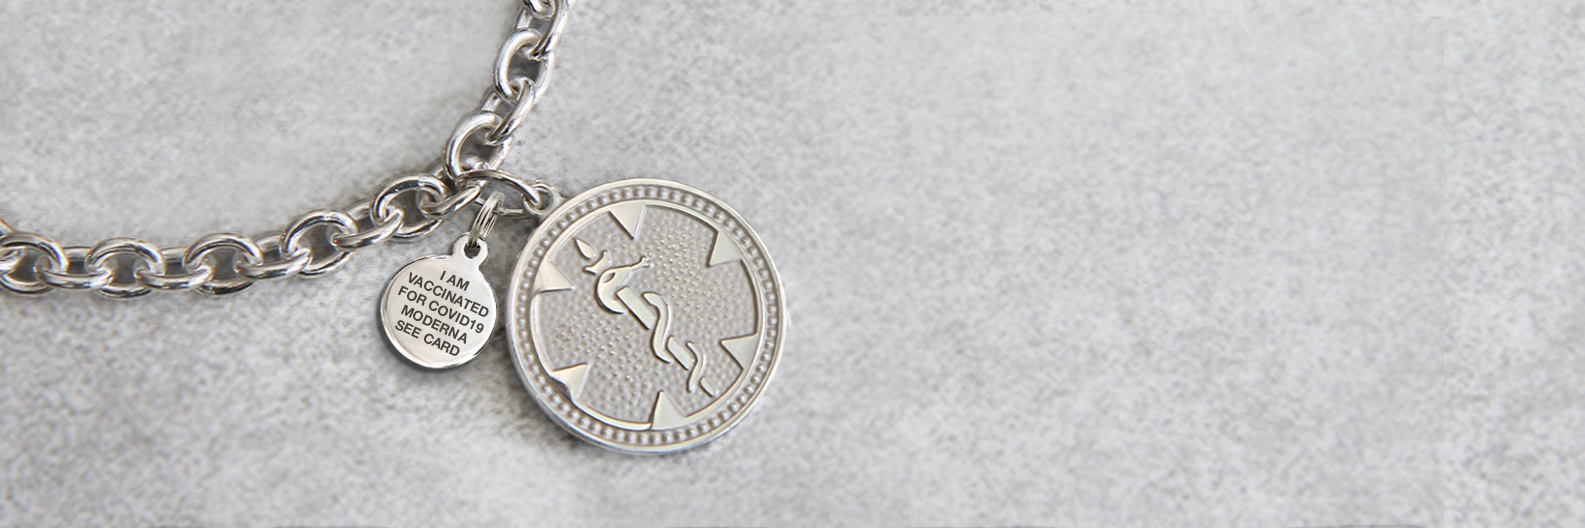 """<span style=""""color:#444444;""""><strong>NEW Vaccine Charms</strong></span><br><span style=""""color: #0c70af;""""><strong> For COVID-19</strong></span>"""